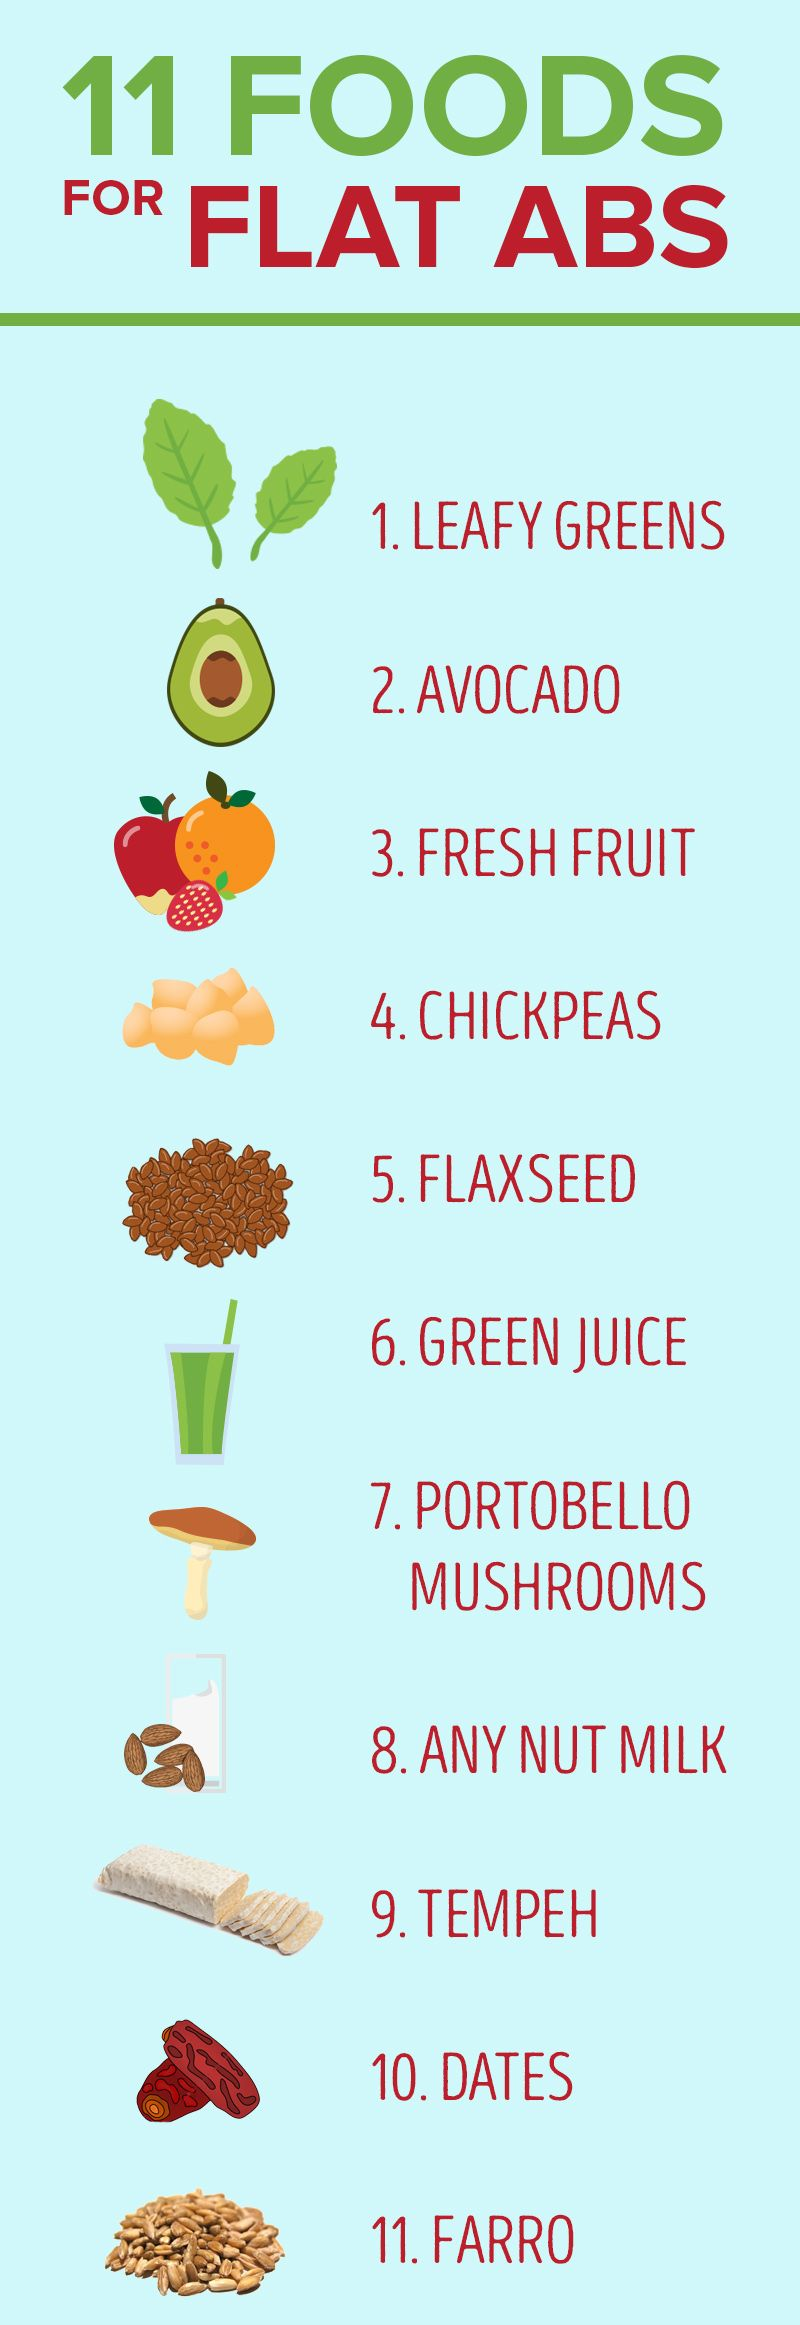 Trying to get flat abs? Here are 11 foods that may help ...